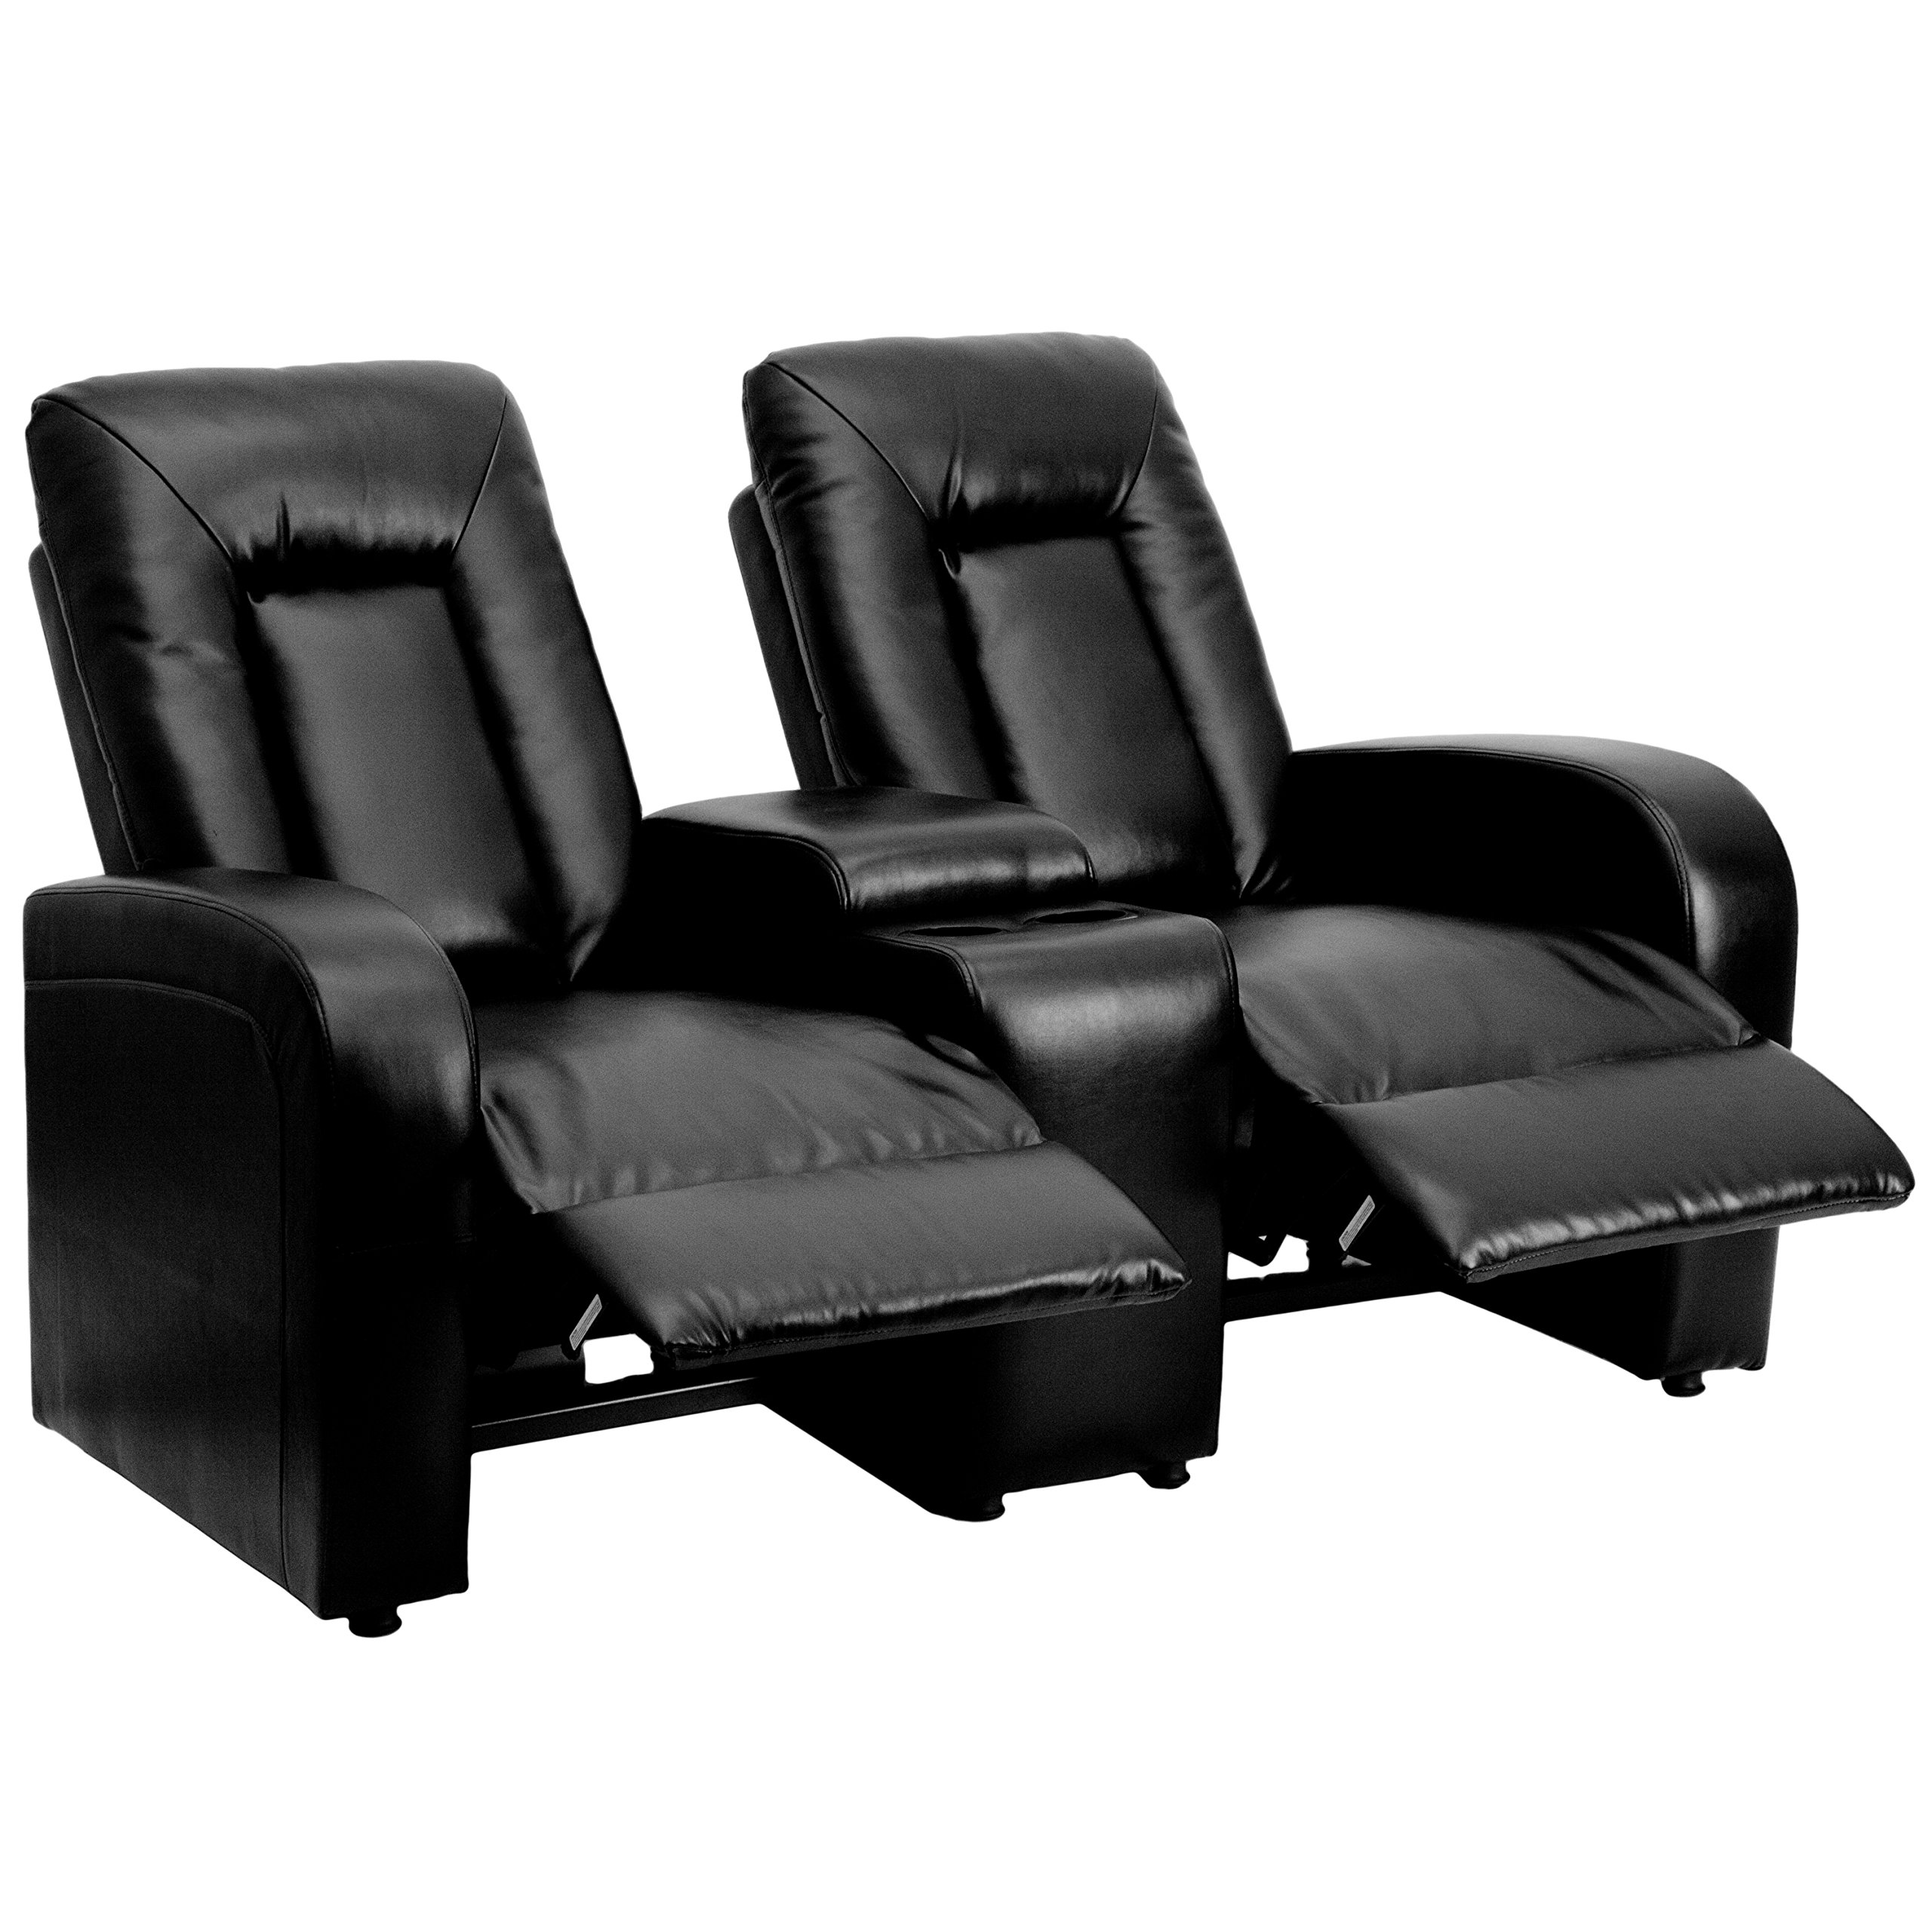 Flash Furniture Eclipse Series 2-Seat Reclining Black Leather Theater Seating Unit with Cup Holders by Flash Furniture